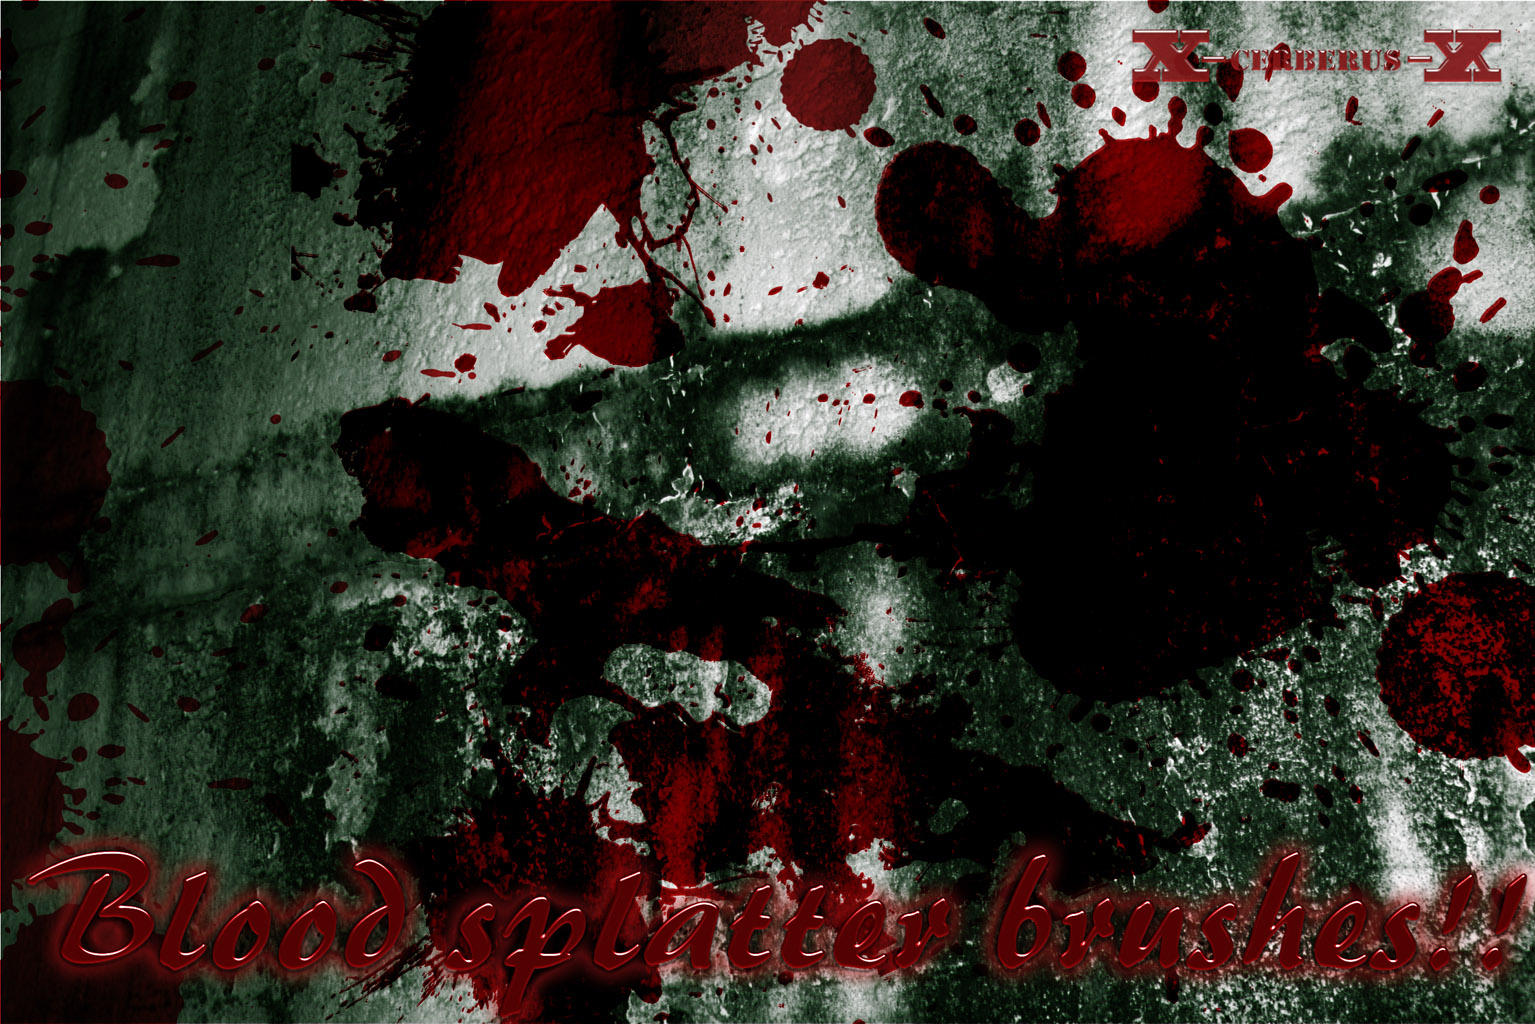 Blood splatter bushes by X-Cerberus-X